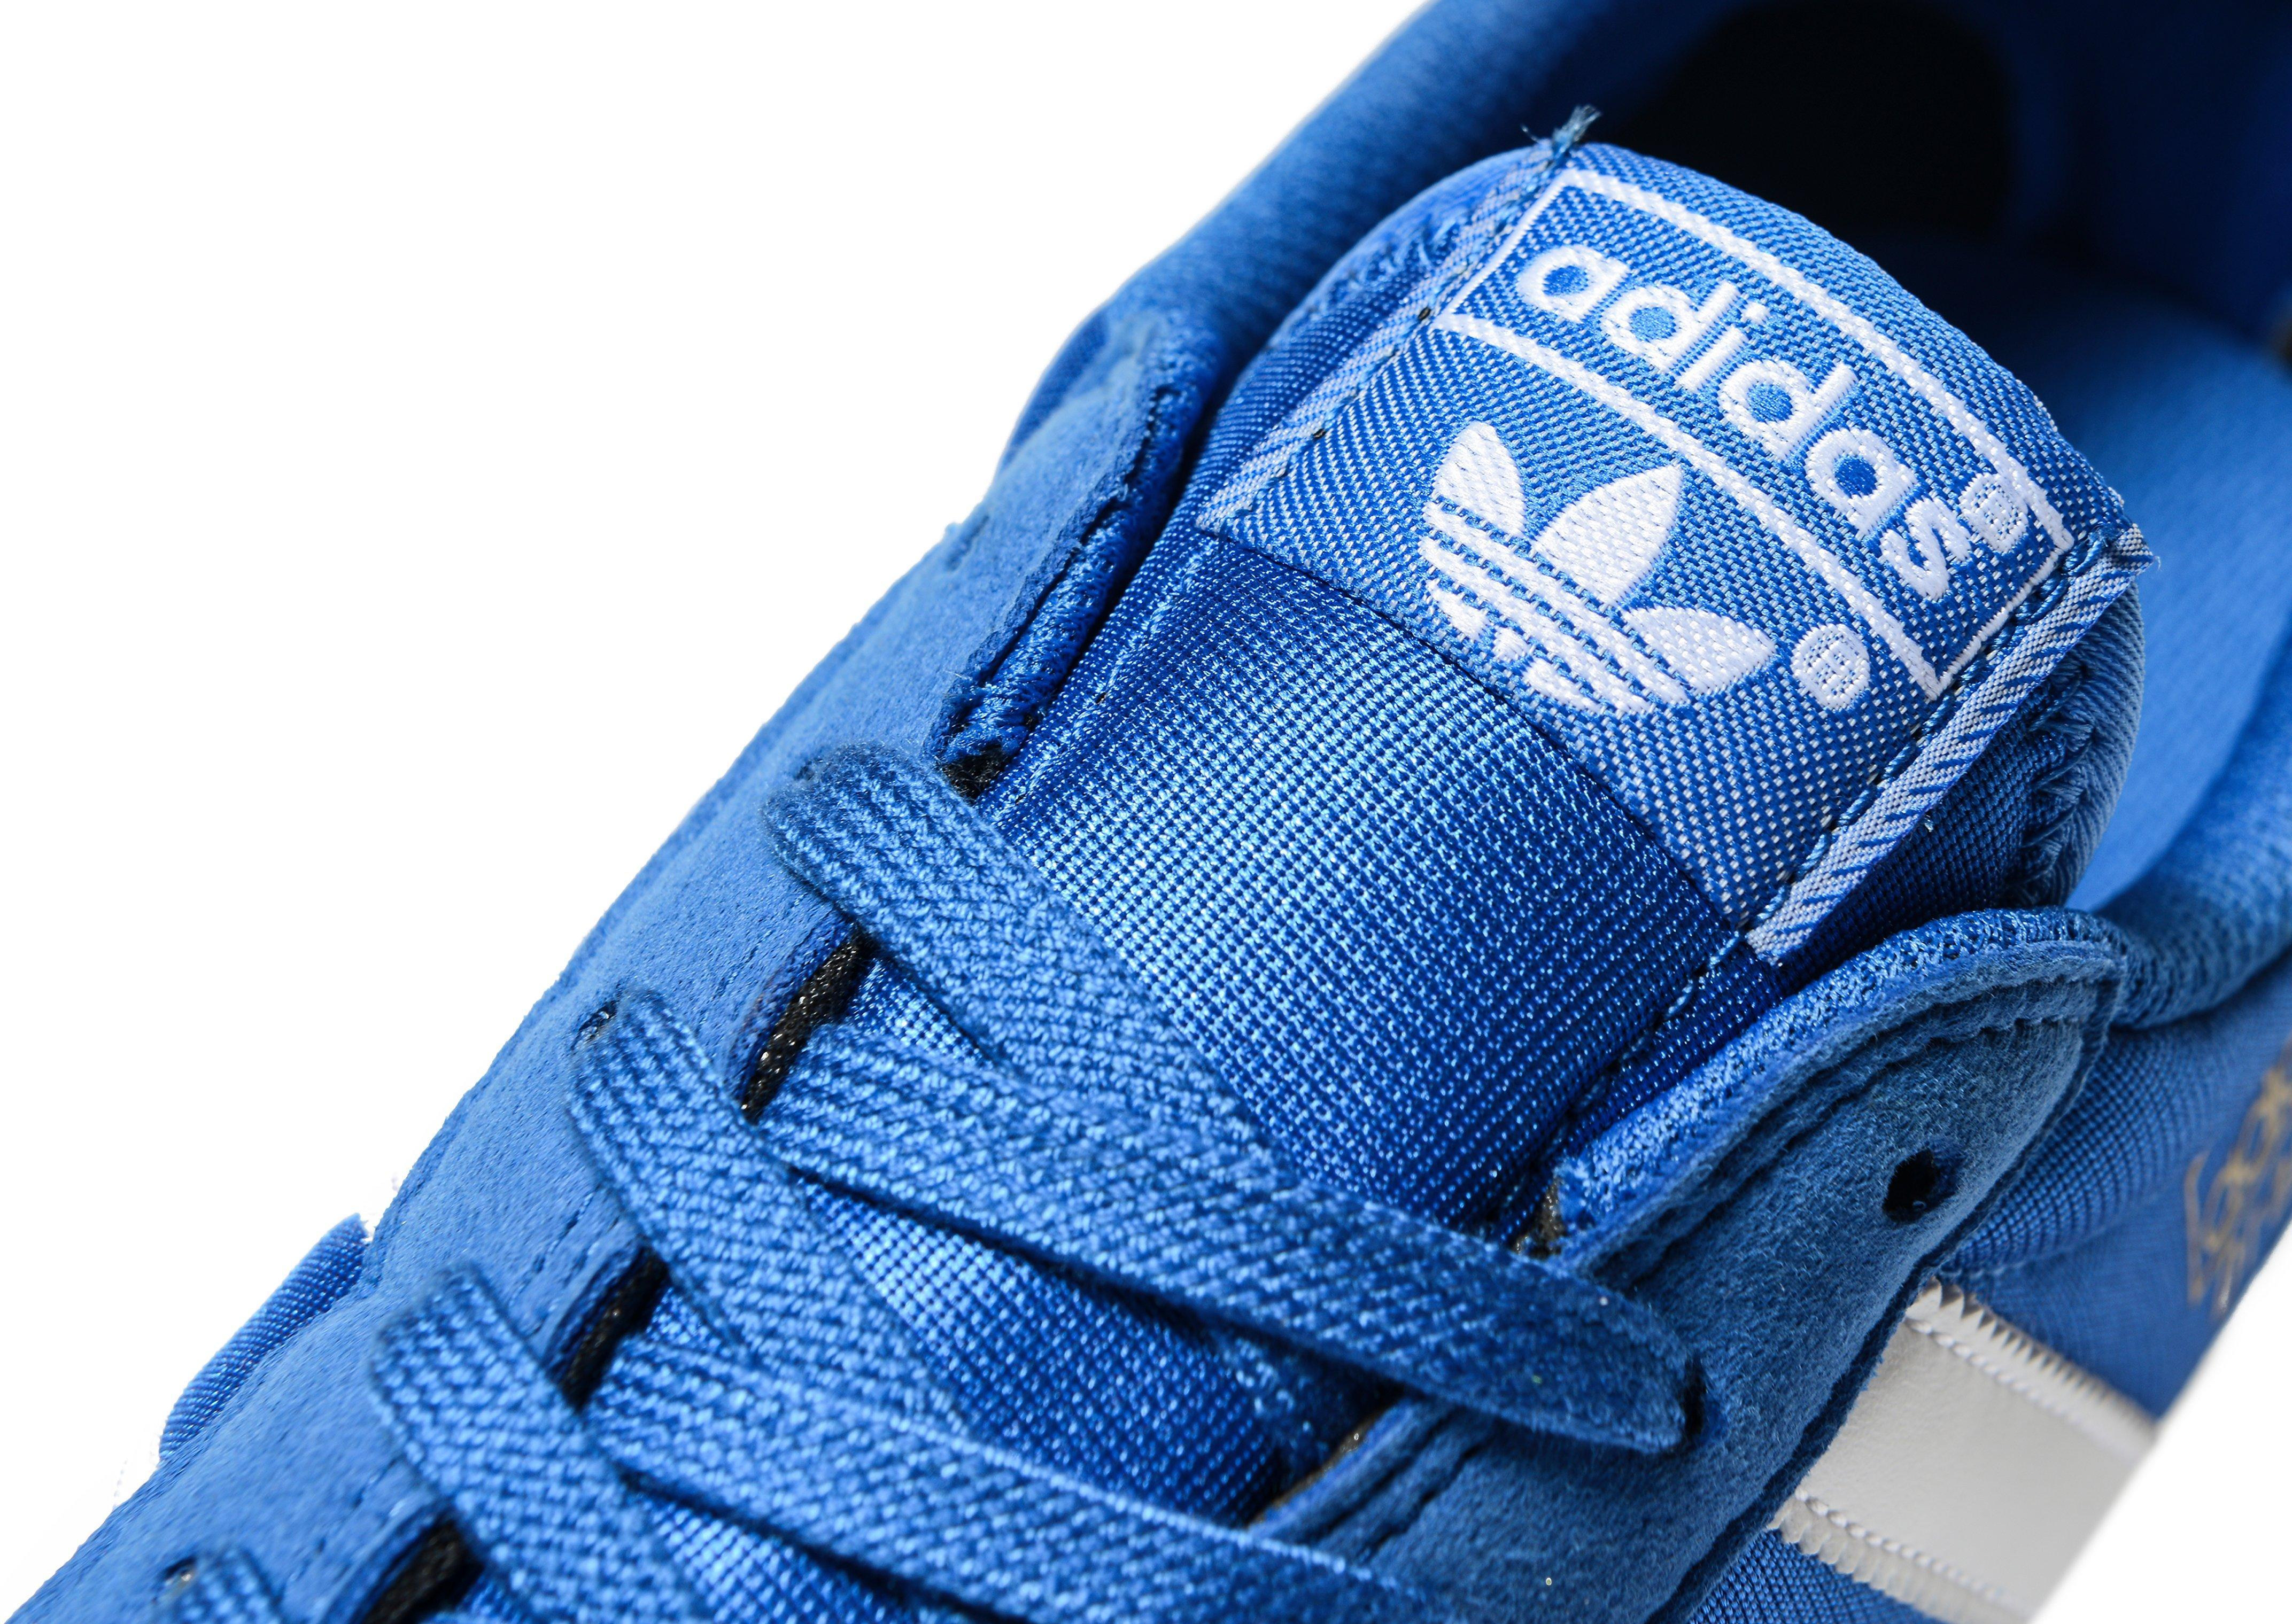 adidas Originals Leather Dragon Vintage in Blue/White (Blue) for ...